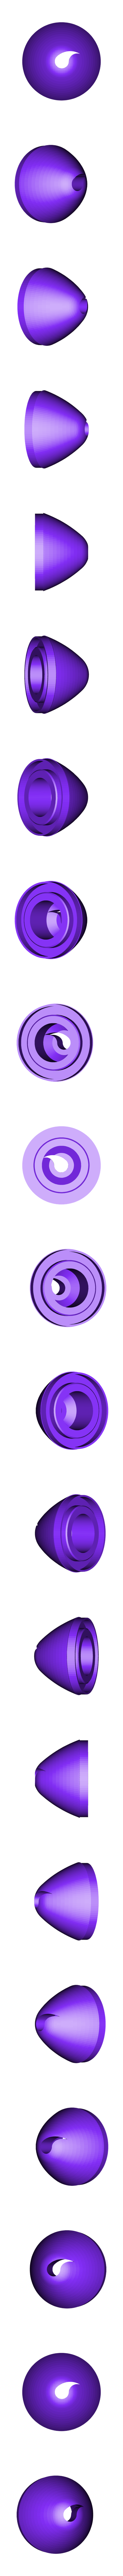 Fan-Spinner201wsCW.stl Download free STL file Optional Spinner with Spin-Mark • 3D printable model, konchan77